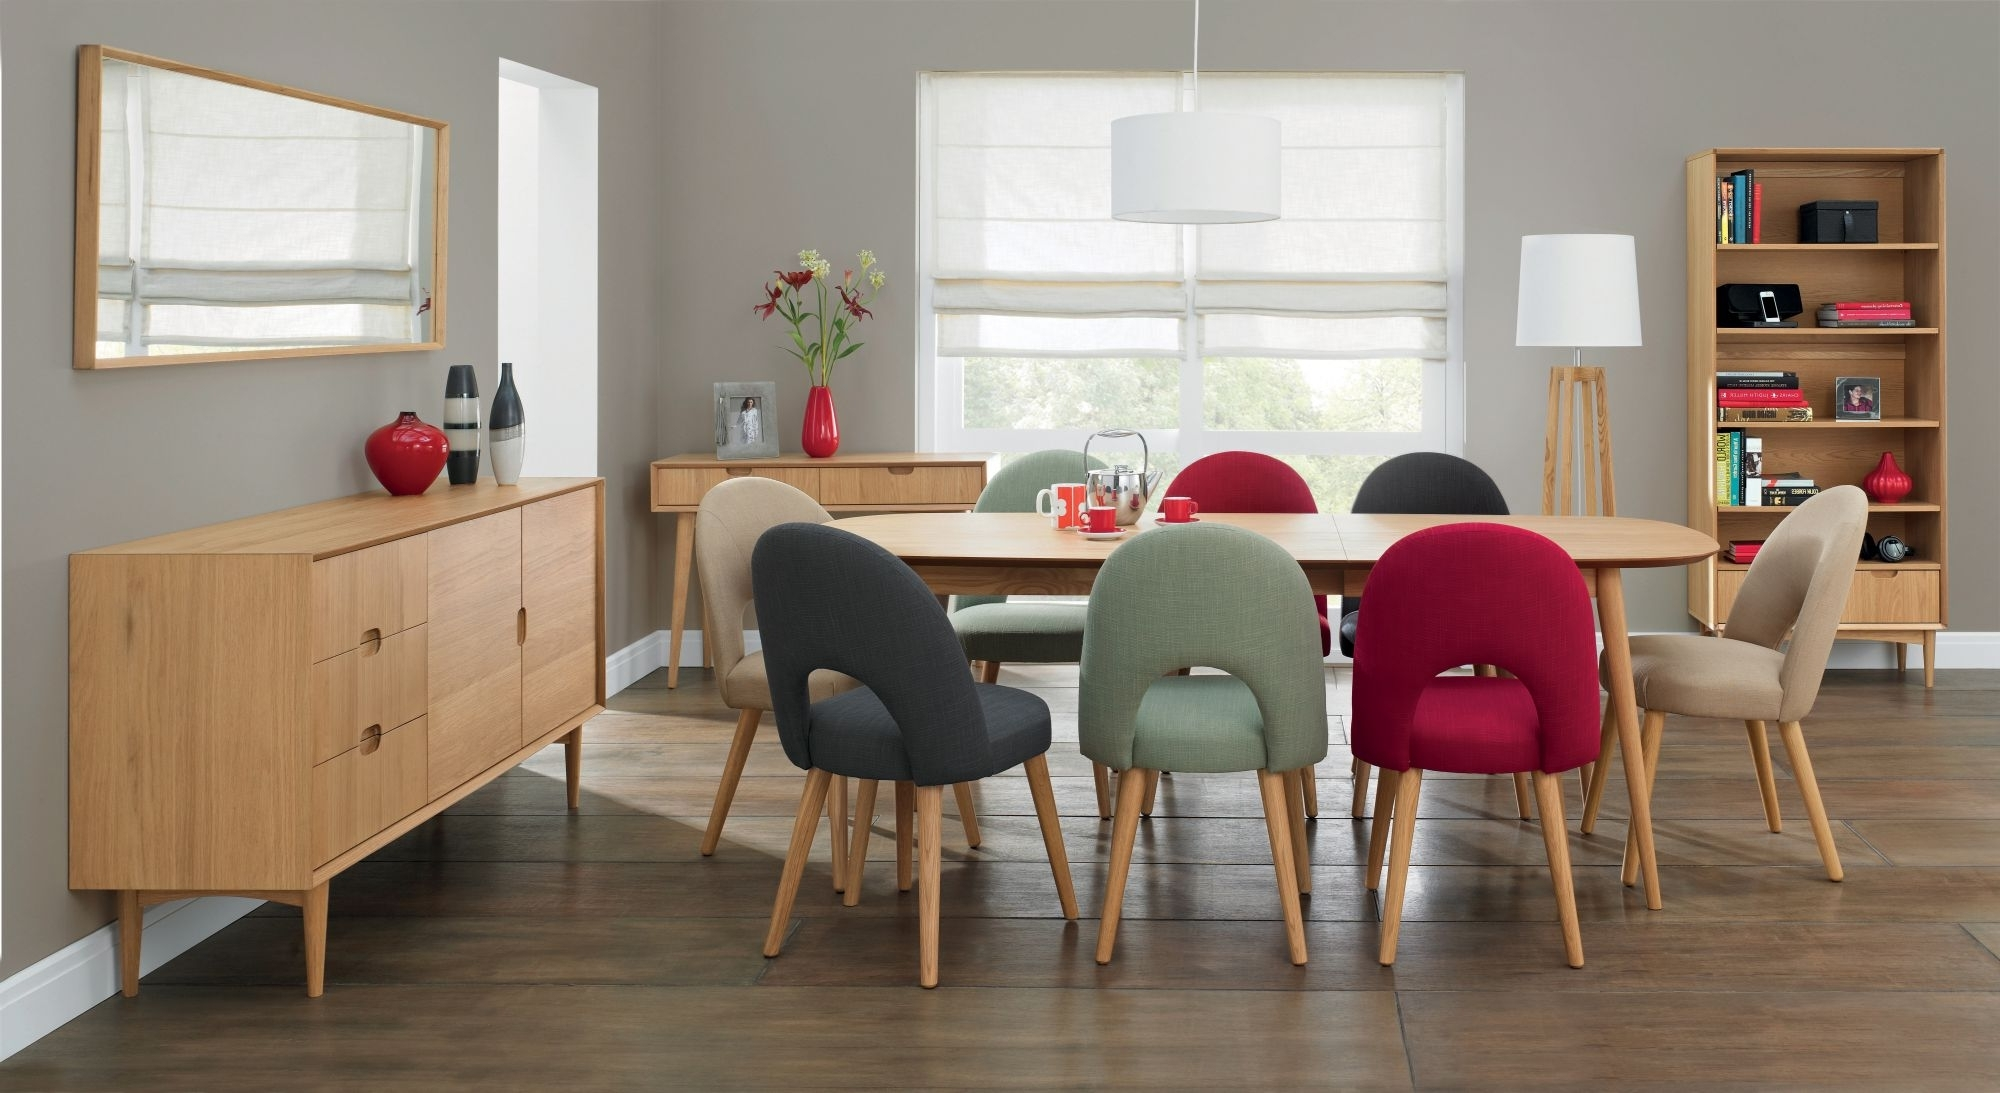 Bentley Designs Oslo Oak 6 Seater Dining Table & 6 Stone Fabric Intended For Trendy Oak 6 Seater Dining Tables (Gallery 17 of 25)